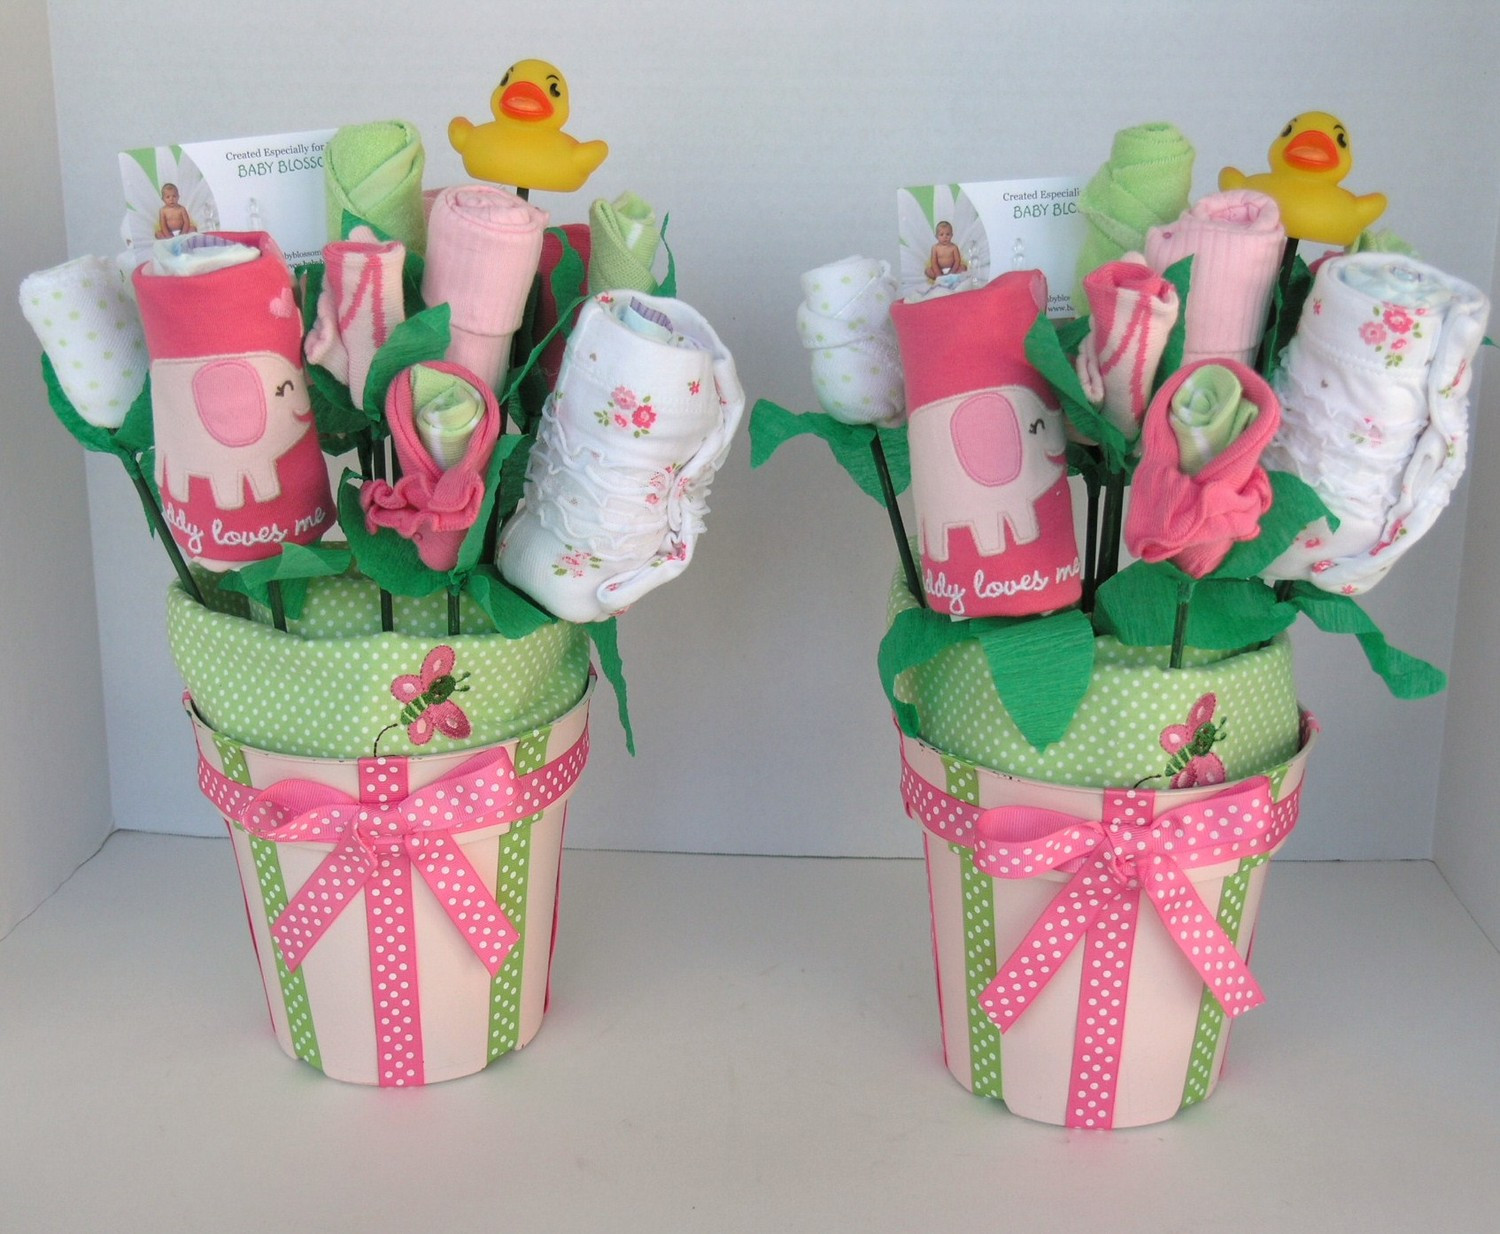 Babyshower Gift Ideas  Five Best DIY Baby Gifting Ideas for The Little Special